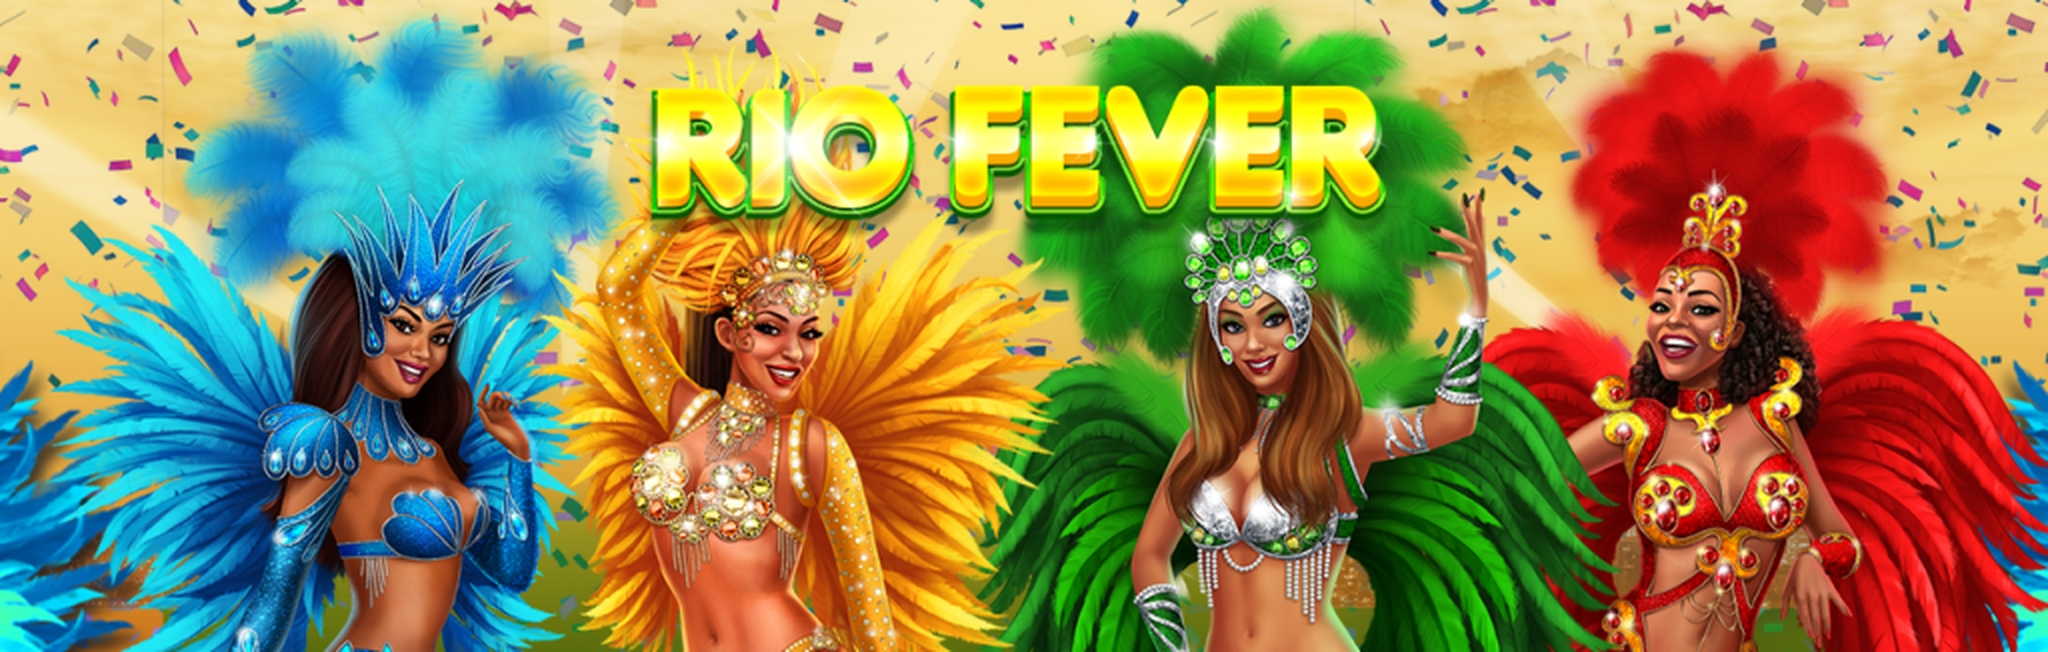 The Rio Fever (Pariplay) Online Slot Demo Game by PariPlay